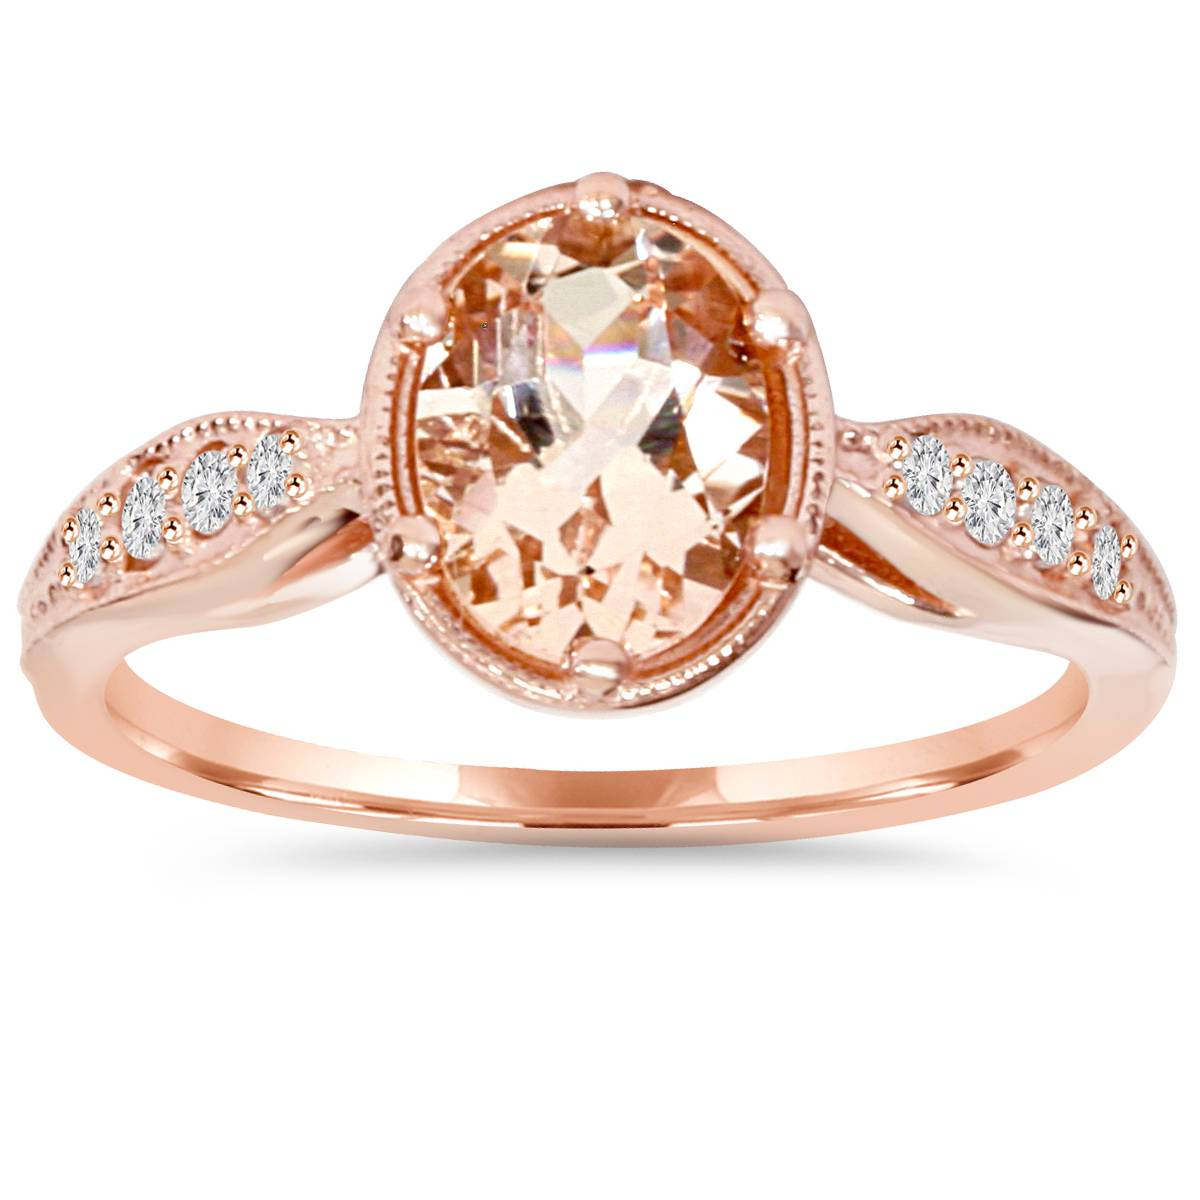 Diamant Rose 1ct Vintage Morganite And Diamond Ring 14k Rose Gold Ebay